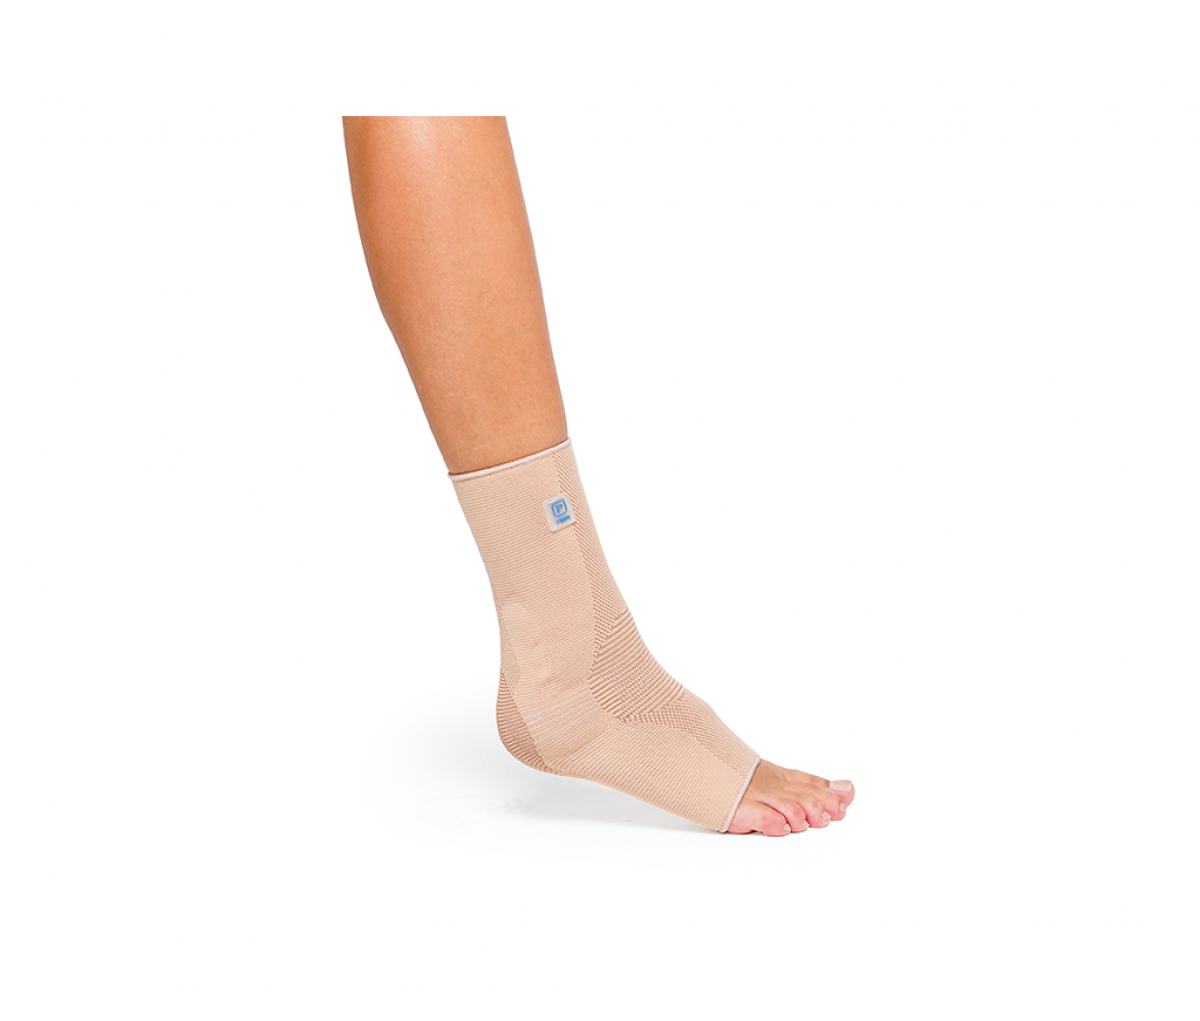 AQTIVO ANKLE BRACE WITH SILICONE INSERT - M P705BG